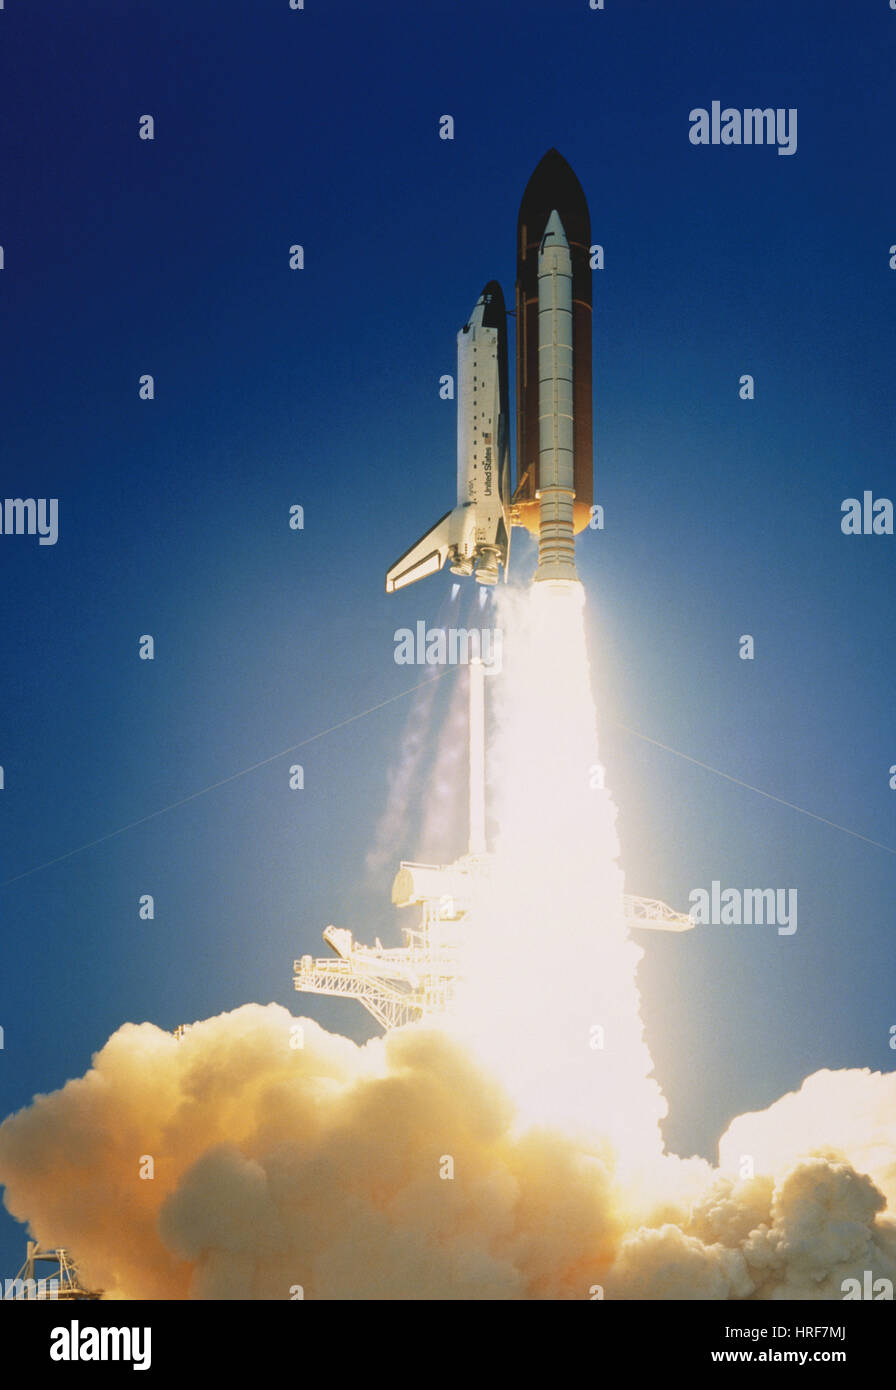 STS-41, Space Shuttle Discovery Launch, 1990 - Stock Image